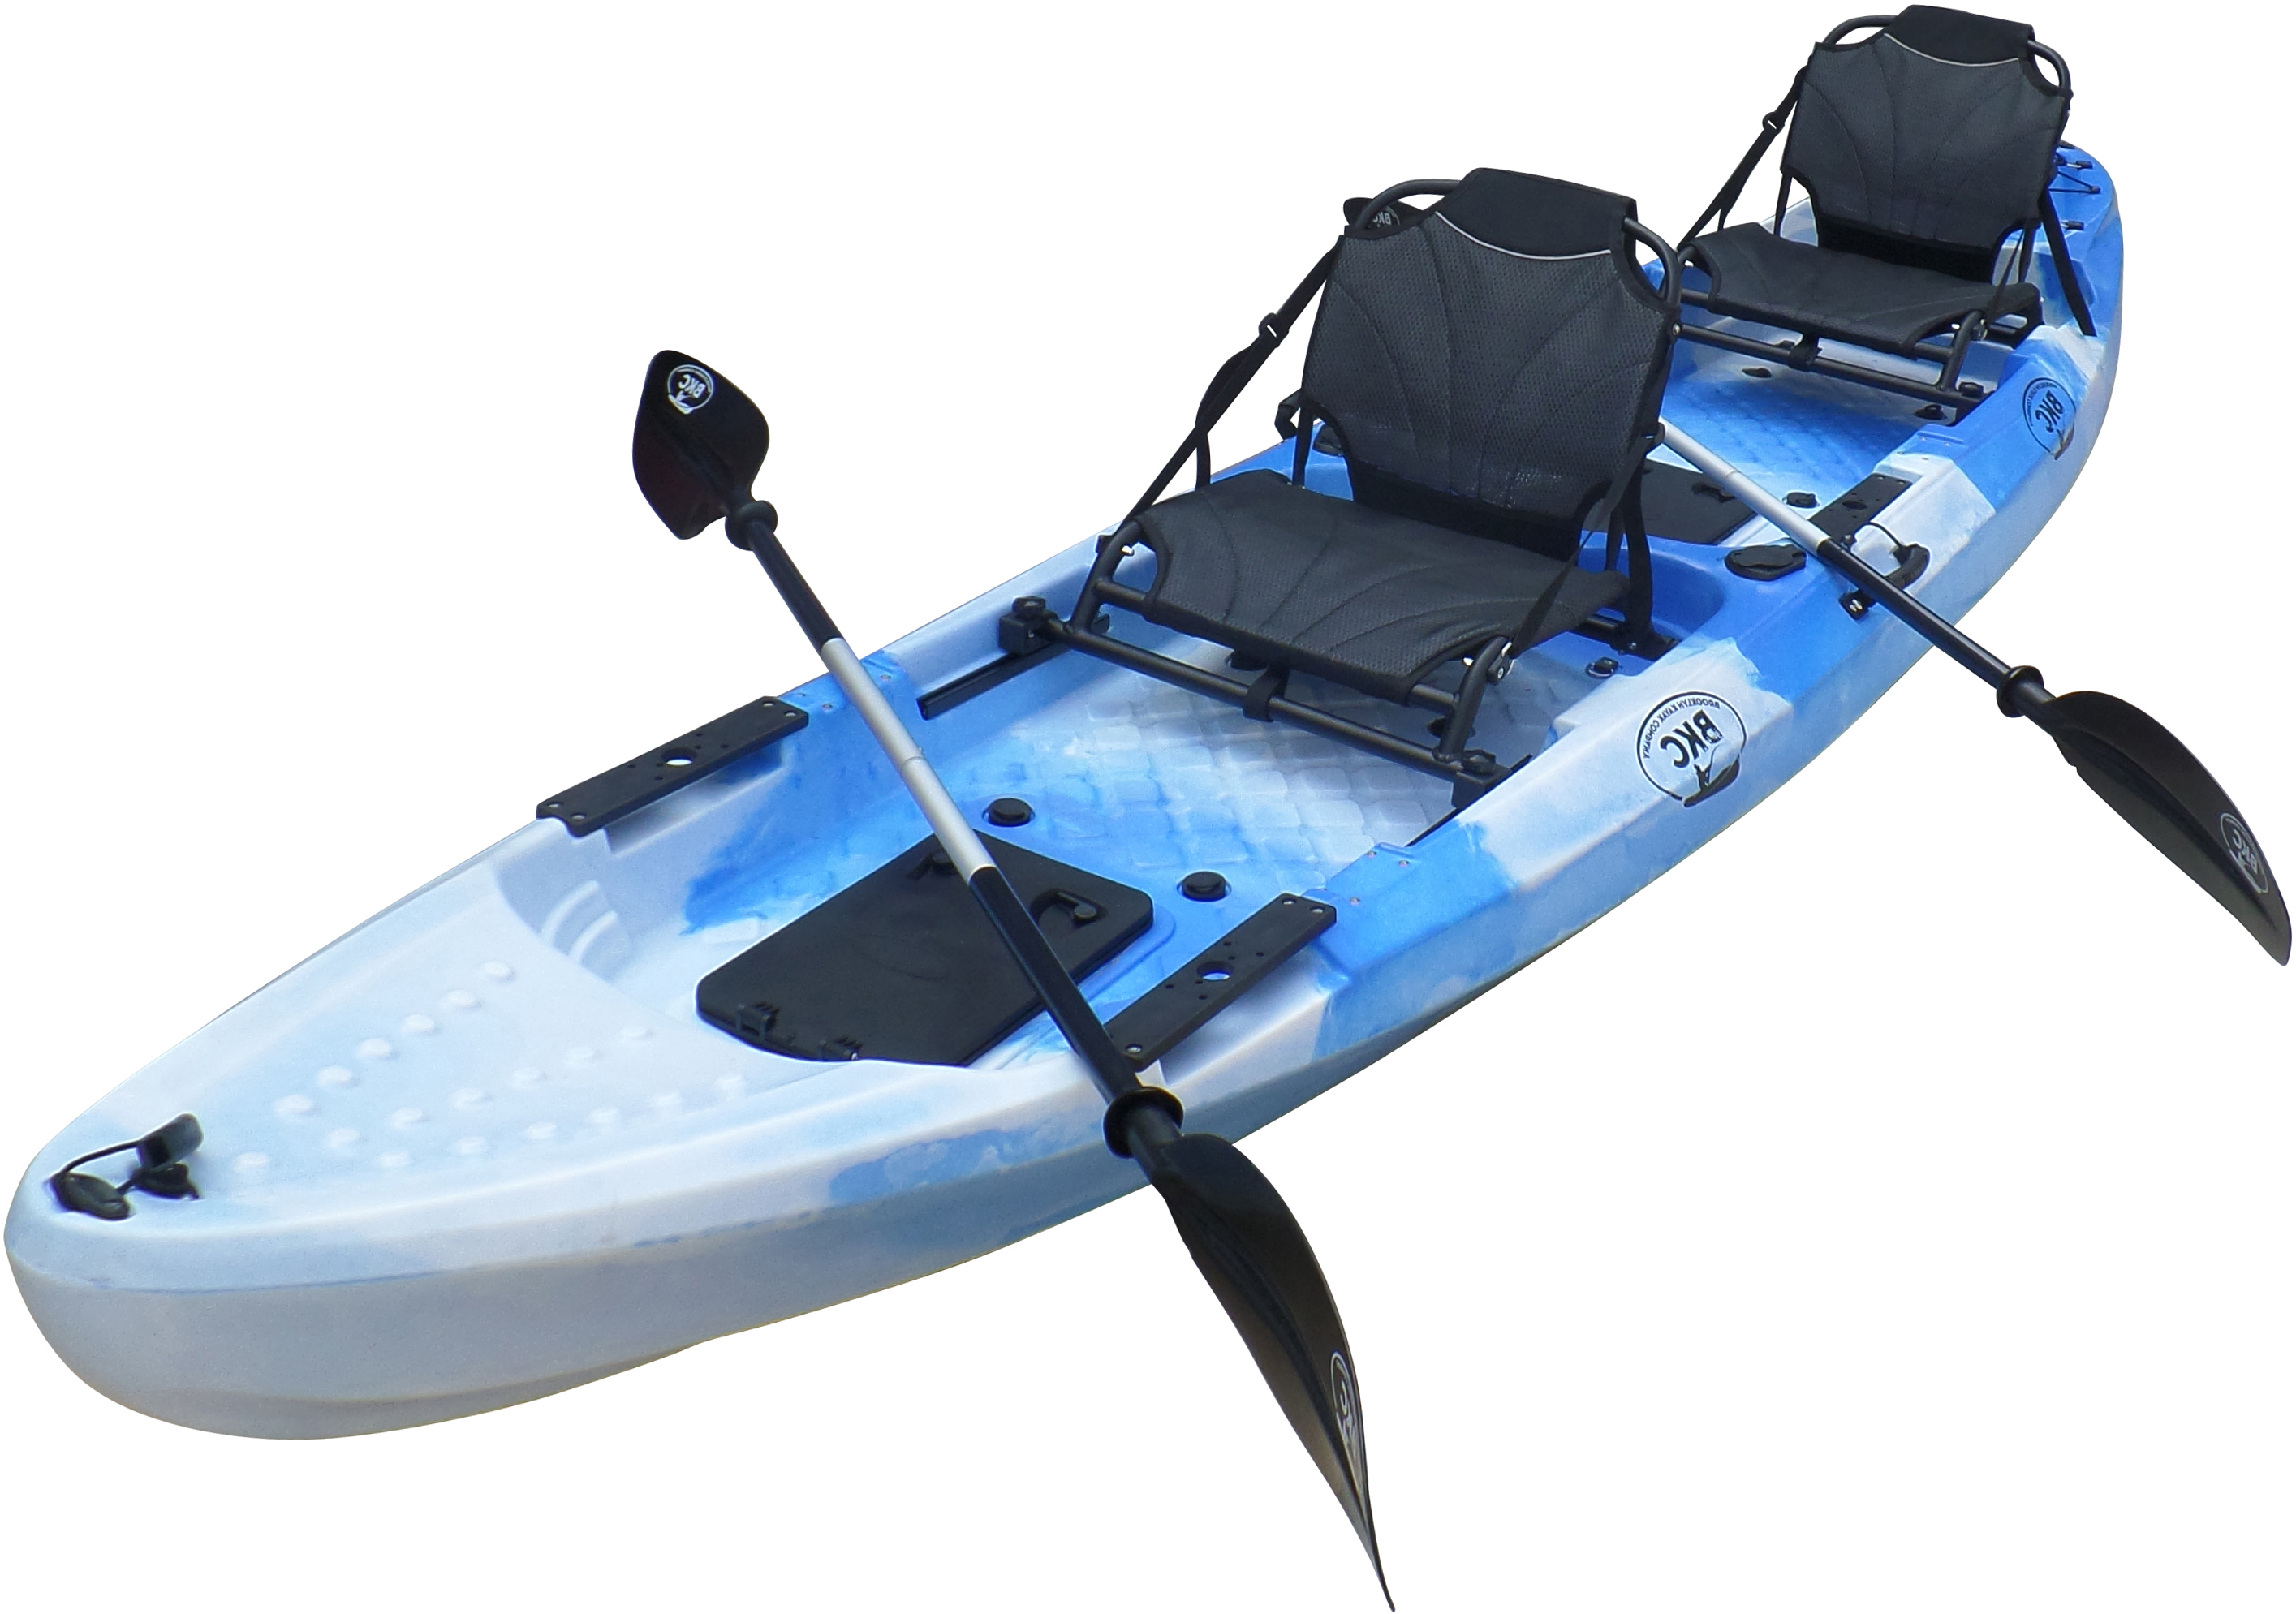 BKC UH-TK29 13-Foot 1-inch Tandem 2 Person Sit On Top Fishing